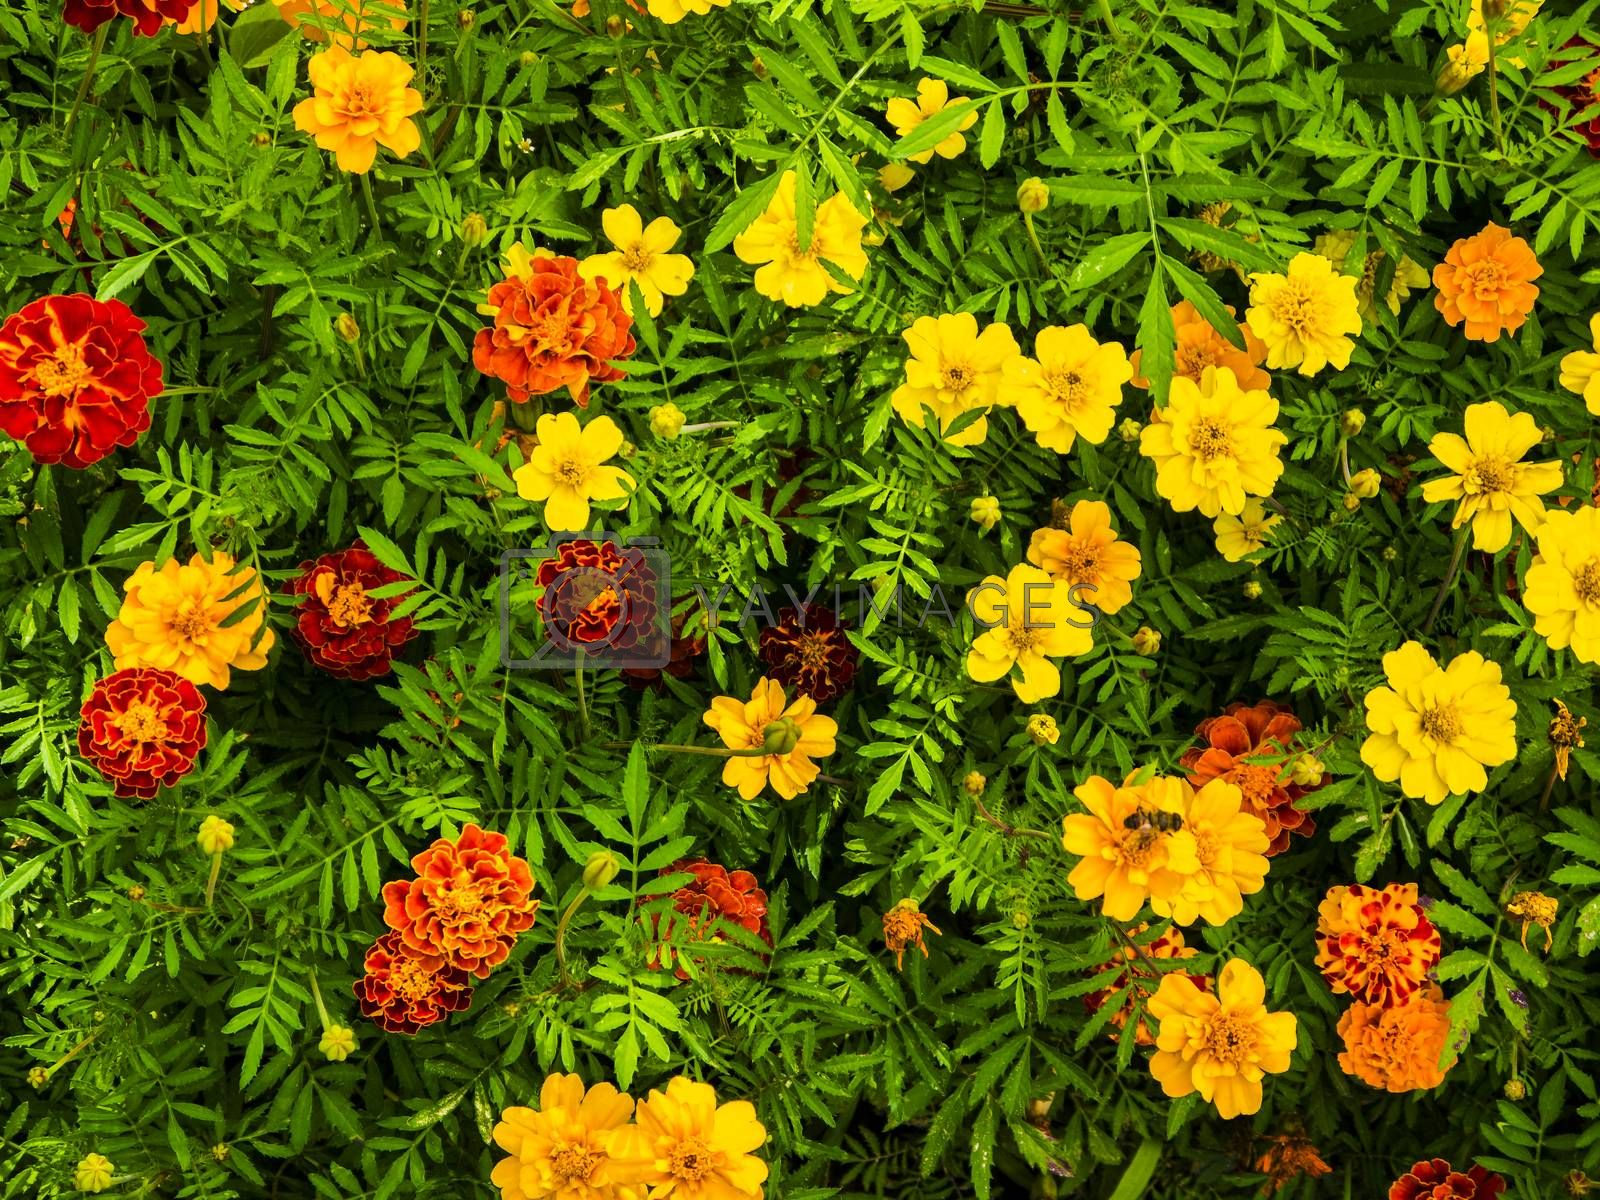 Yellow and red marigolds.